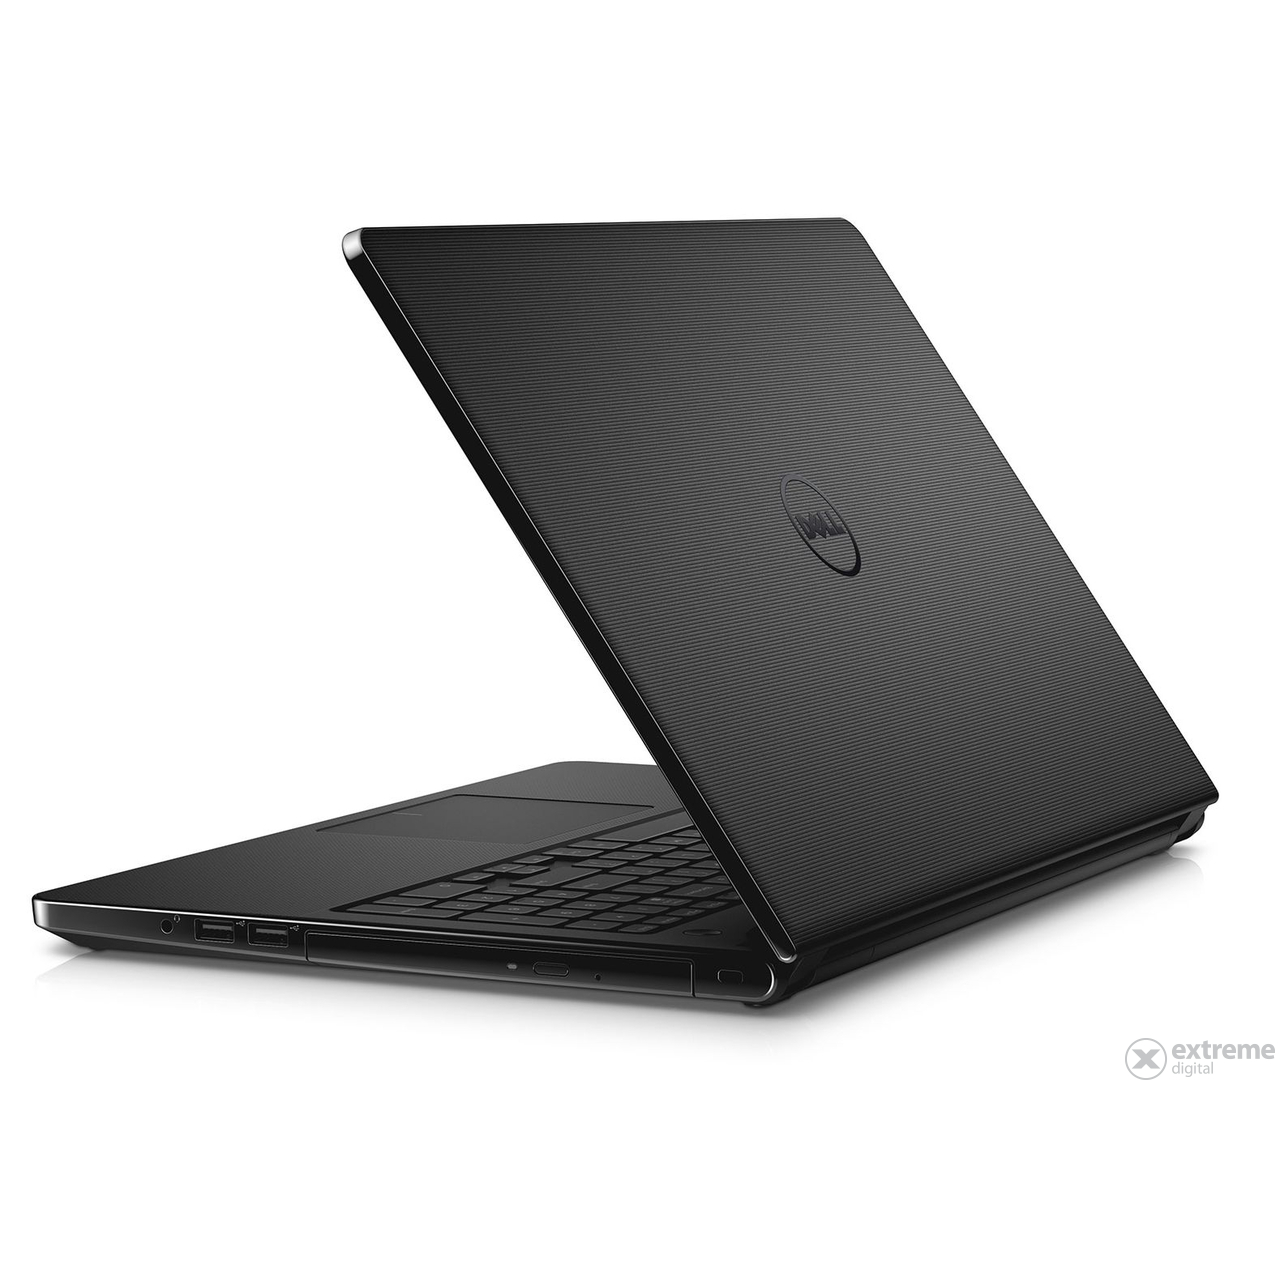 dell-vostro-3558-179723-notebook-fekete-windows-8-1-pro-operacios-rendszer_ee35383b.jpg